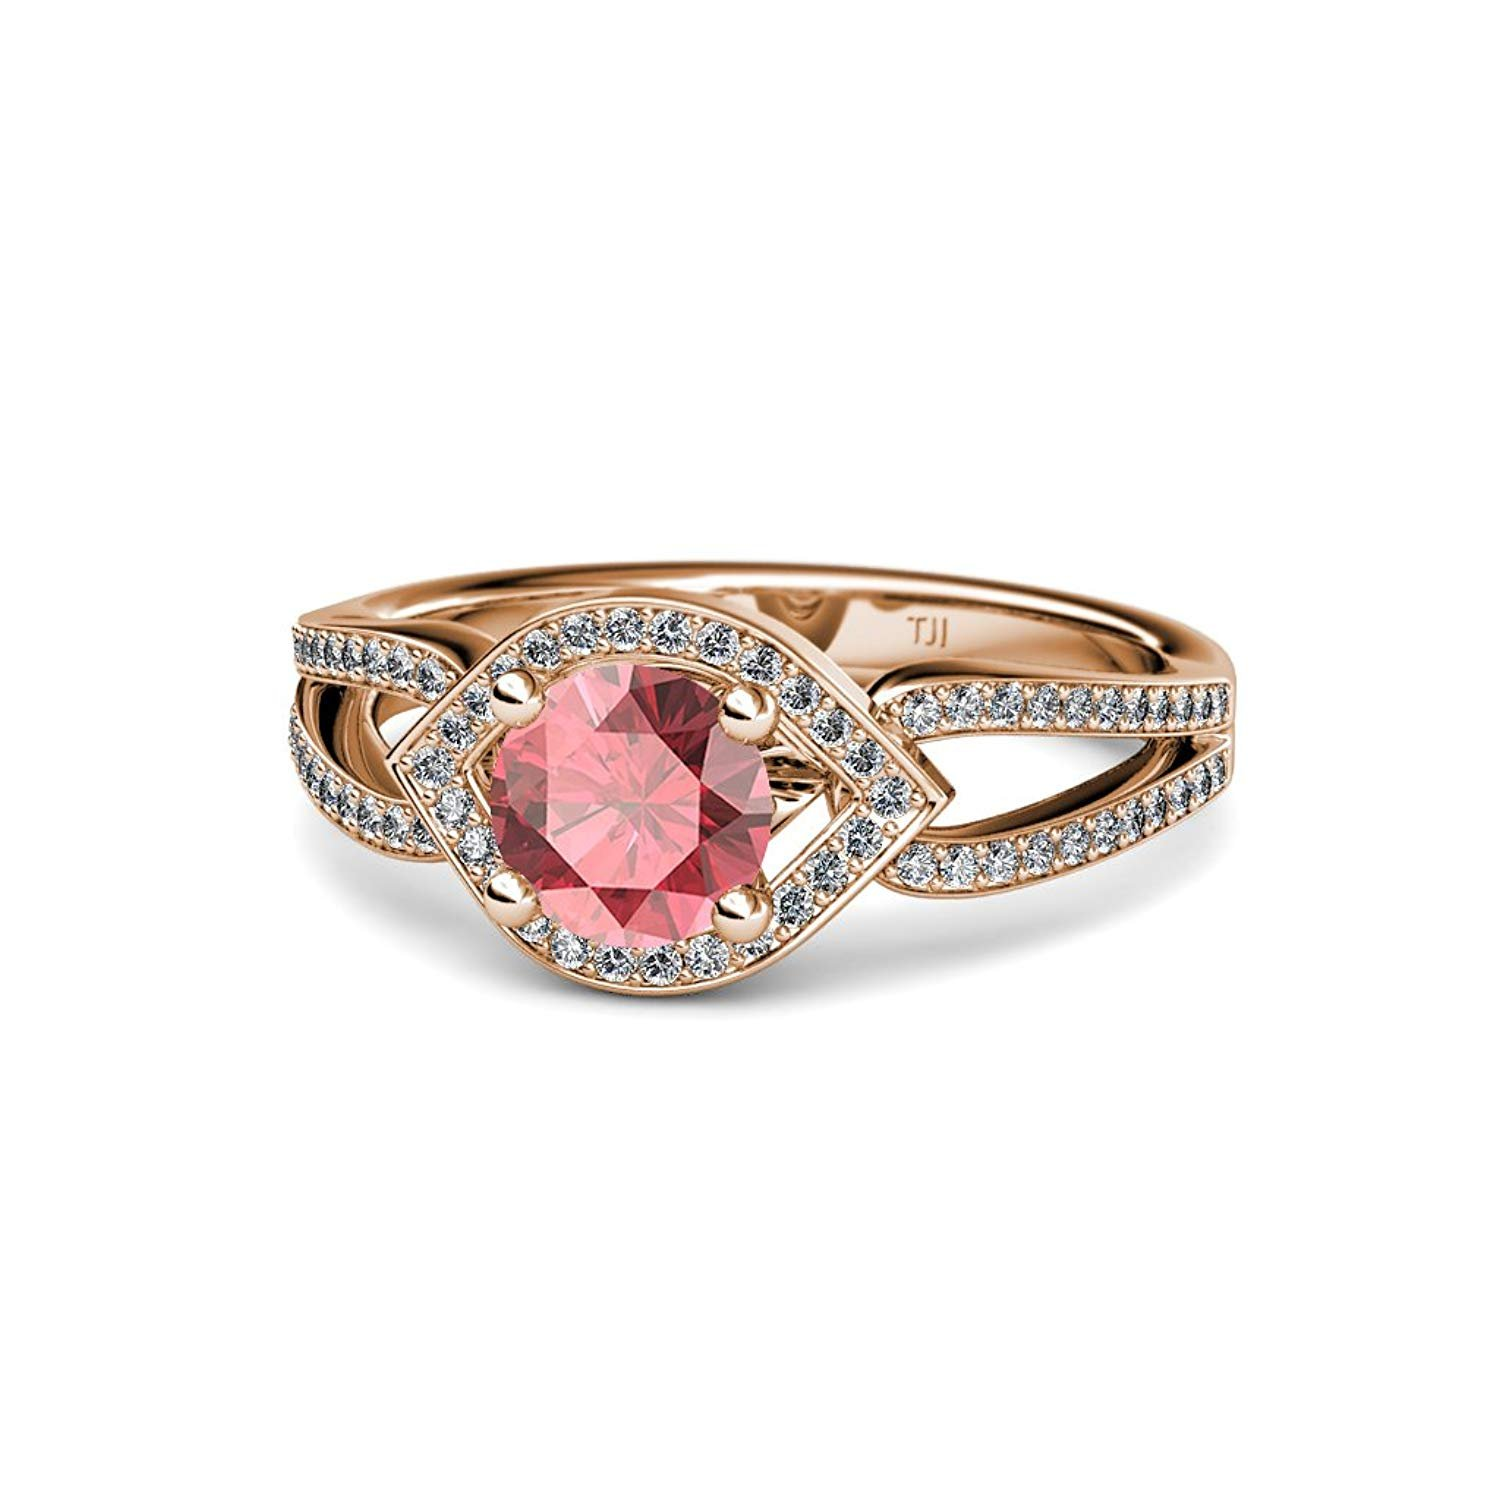 Pink Tourmaline and Diamond (SI2-I1, G-H) Eye Halo Engagement Ring 1.43 ct tw in 14K Rose Gold.size 8.5 by TriJewels